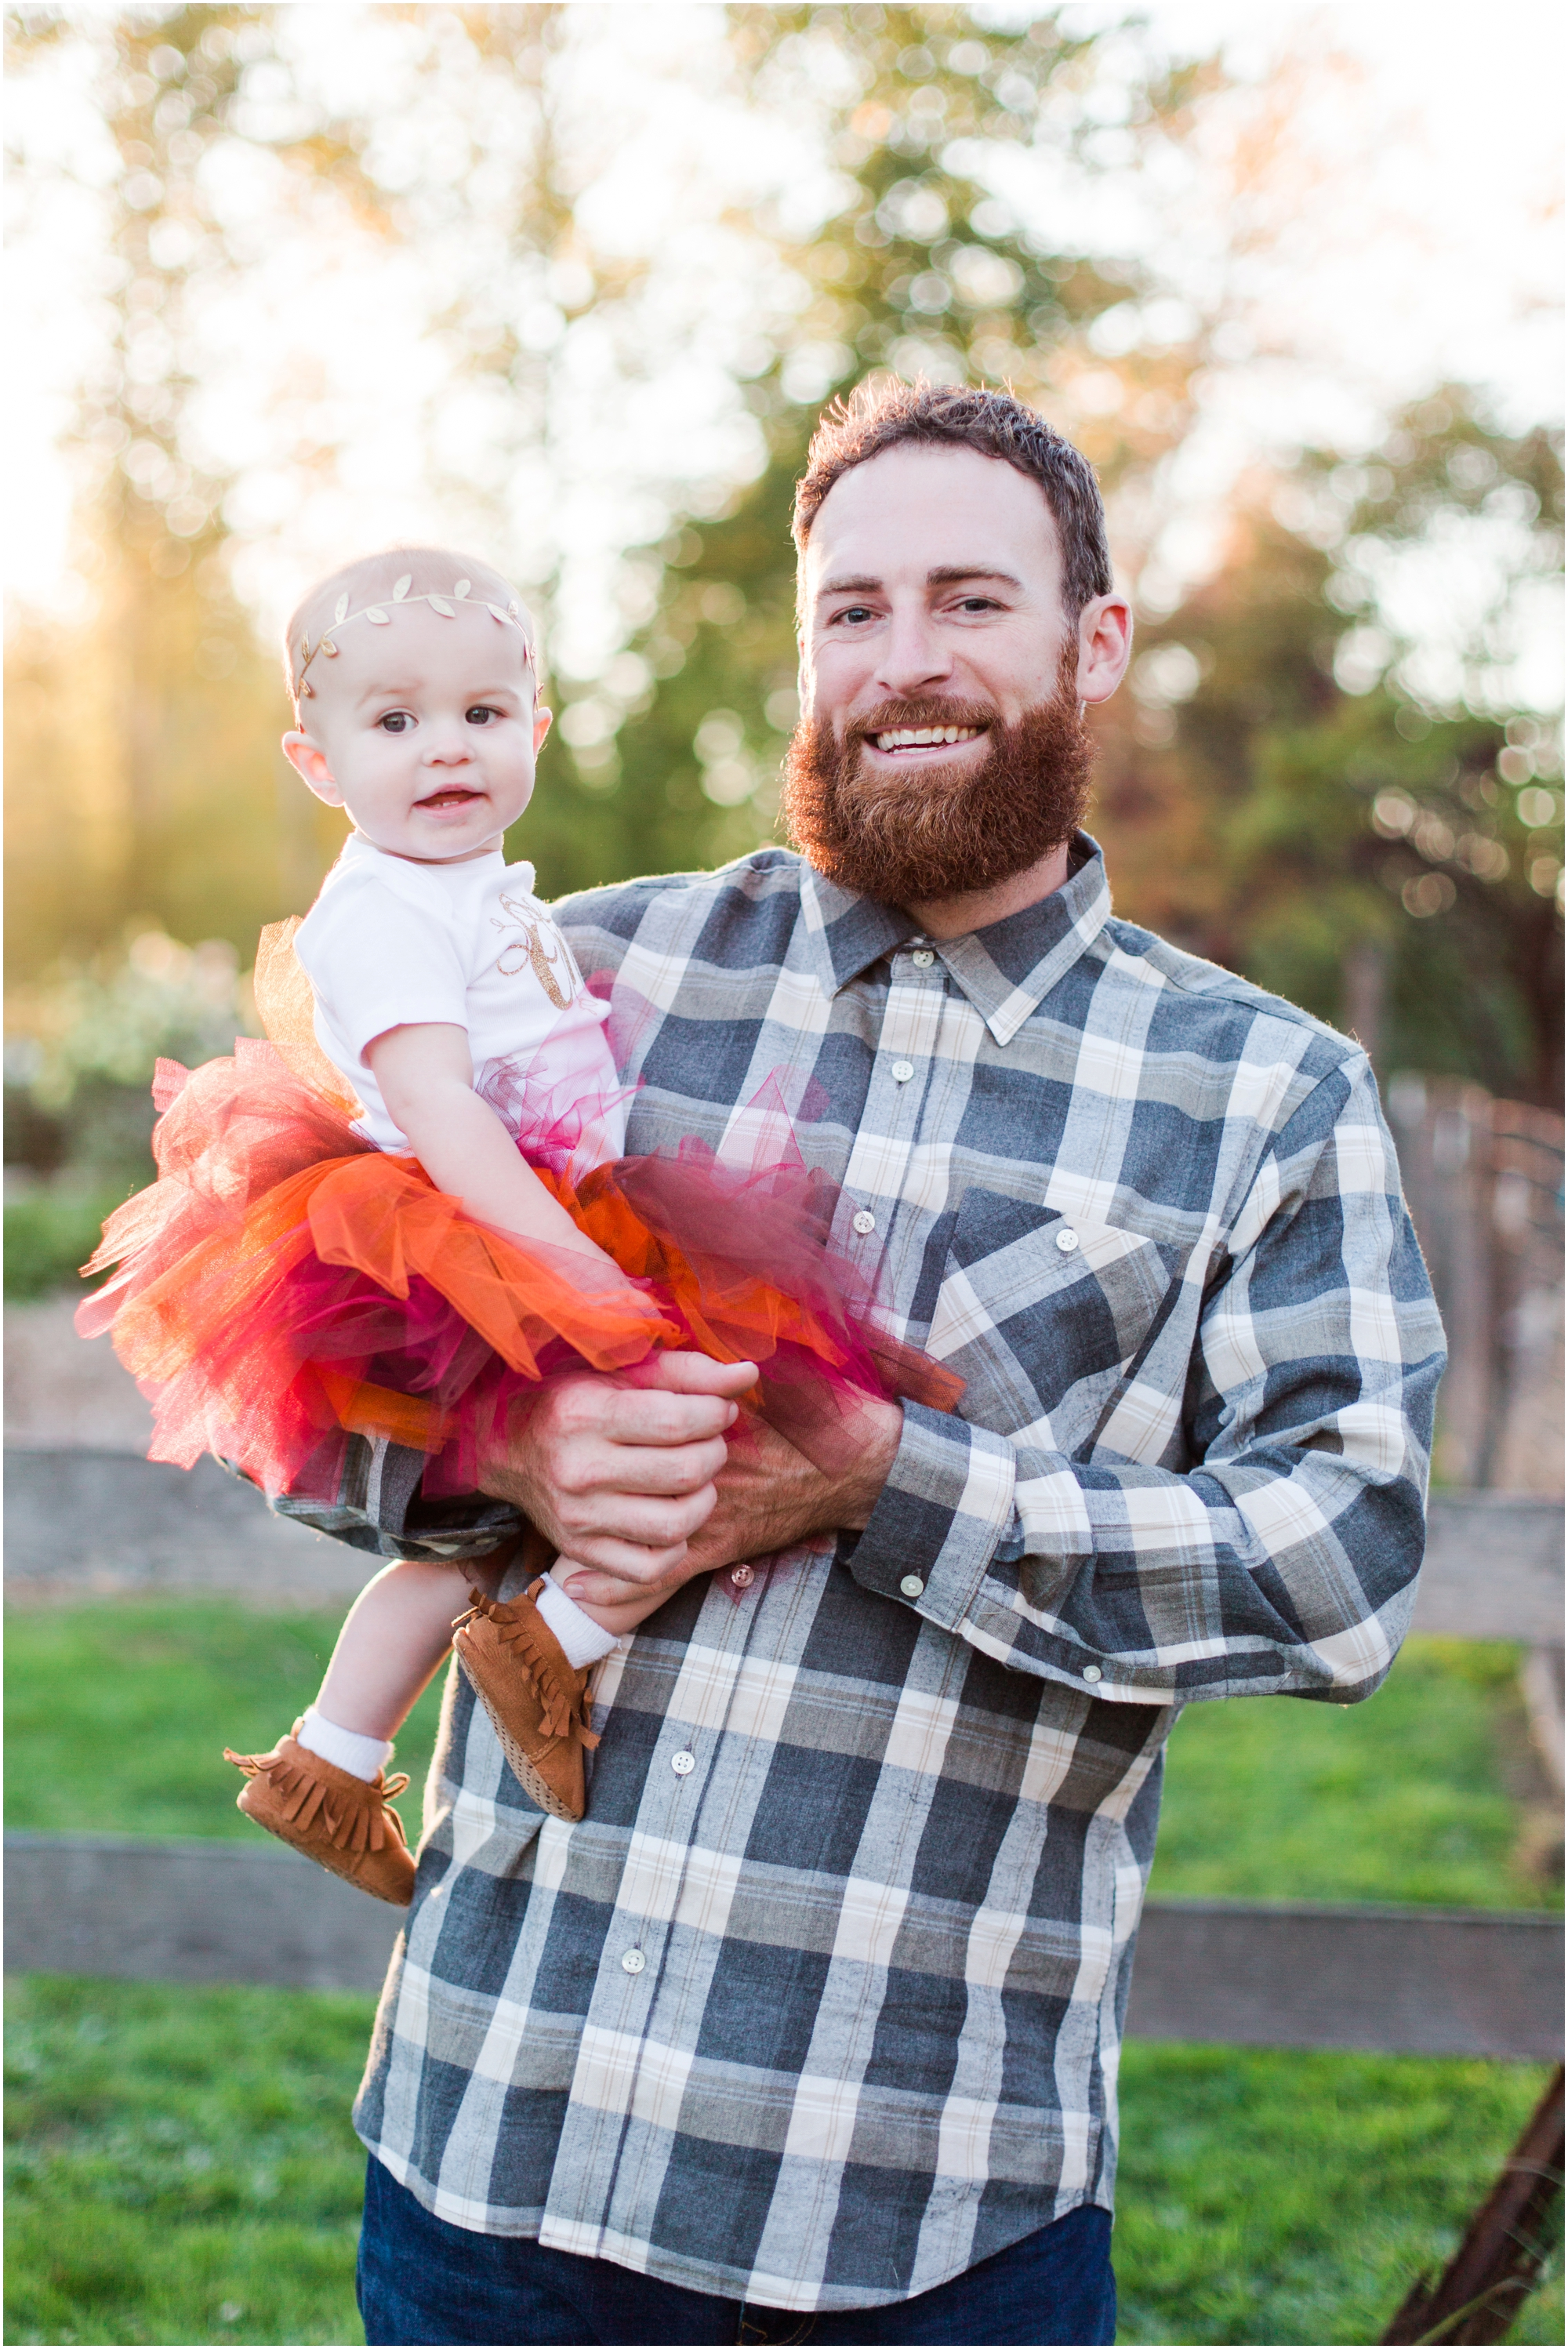 One Year old portriats by Briana Calderon Photography based in the Greater Seattle & Tacoma, WA_0956.jpg